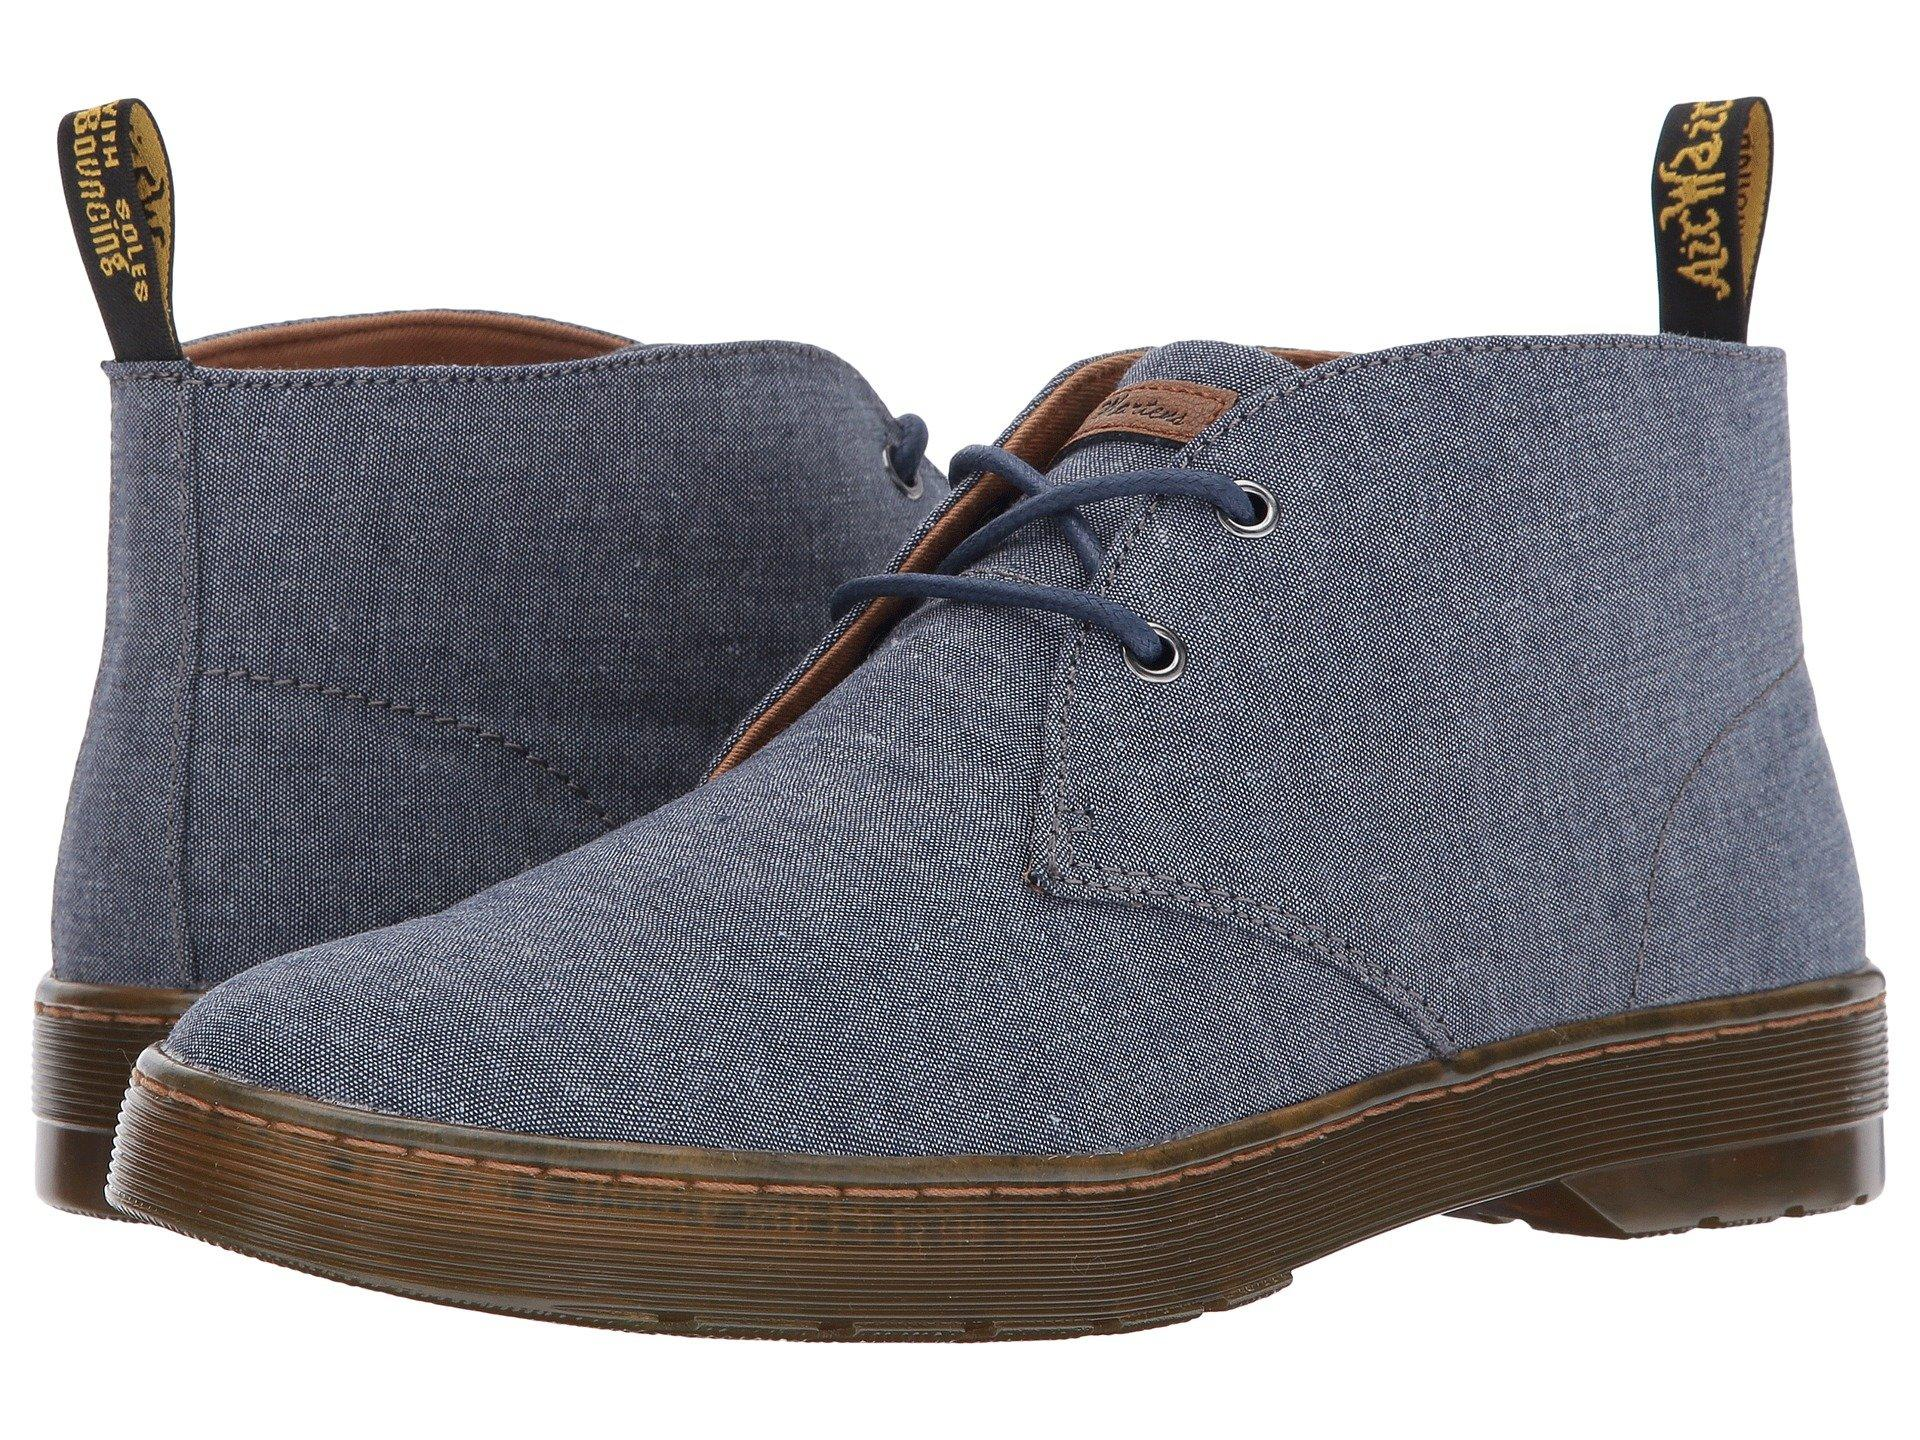 3723b317281 Mayport 2-Eye Desert Boot, True Navy Chambray Twill/Tan Knott